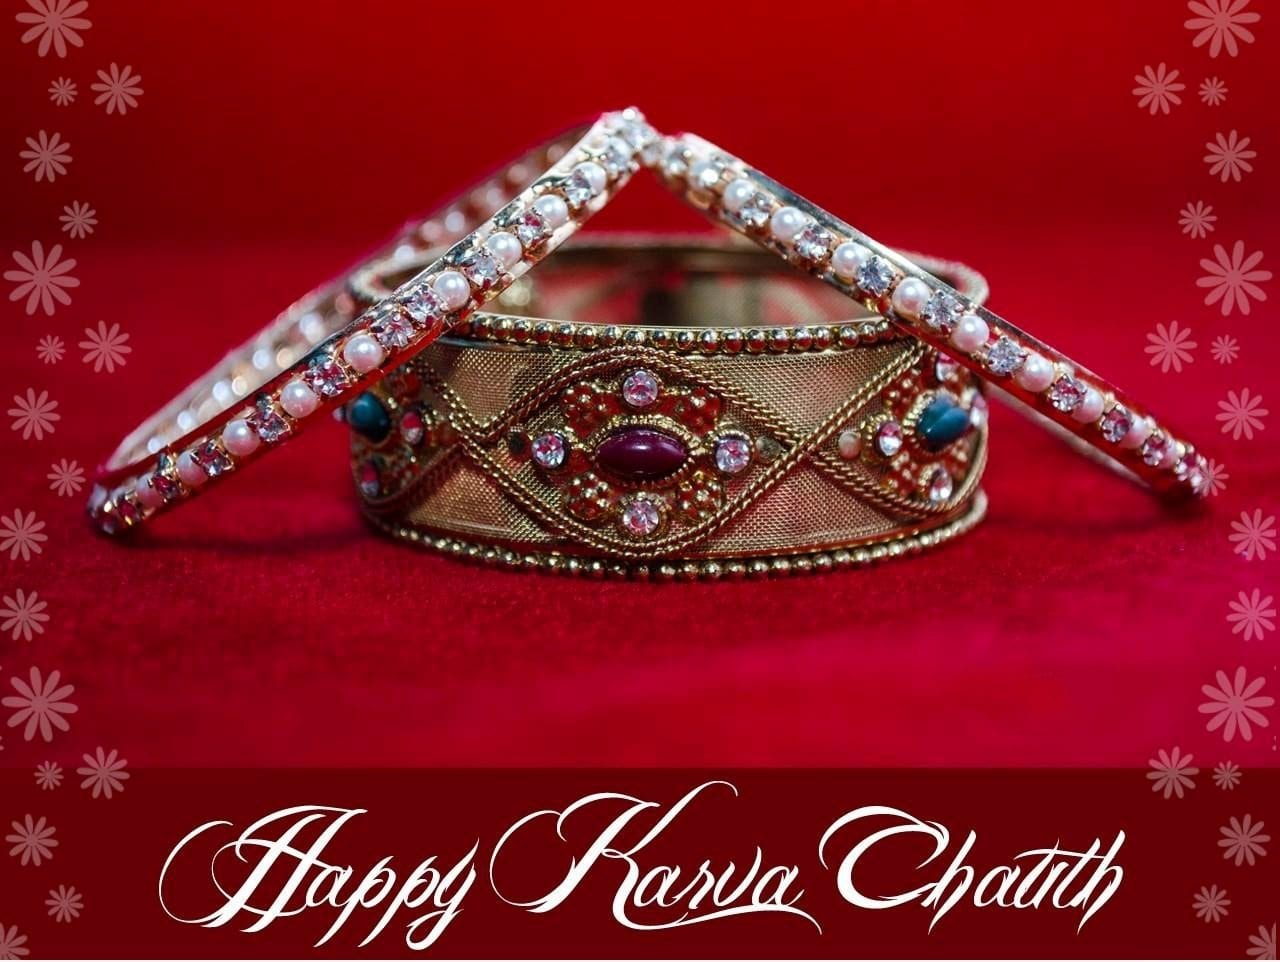 Happy-Karwa-Chauth-HD-Wallpapers-Images-Greetings-updn-1